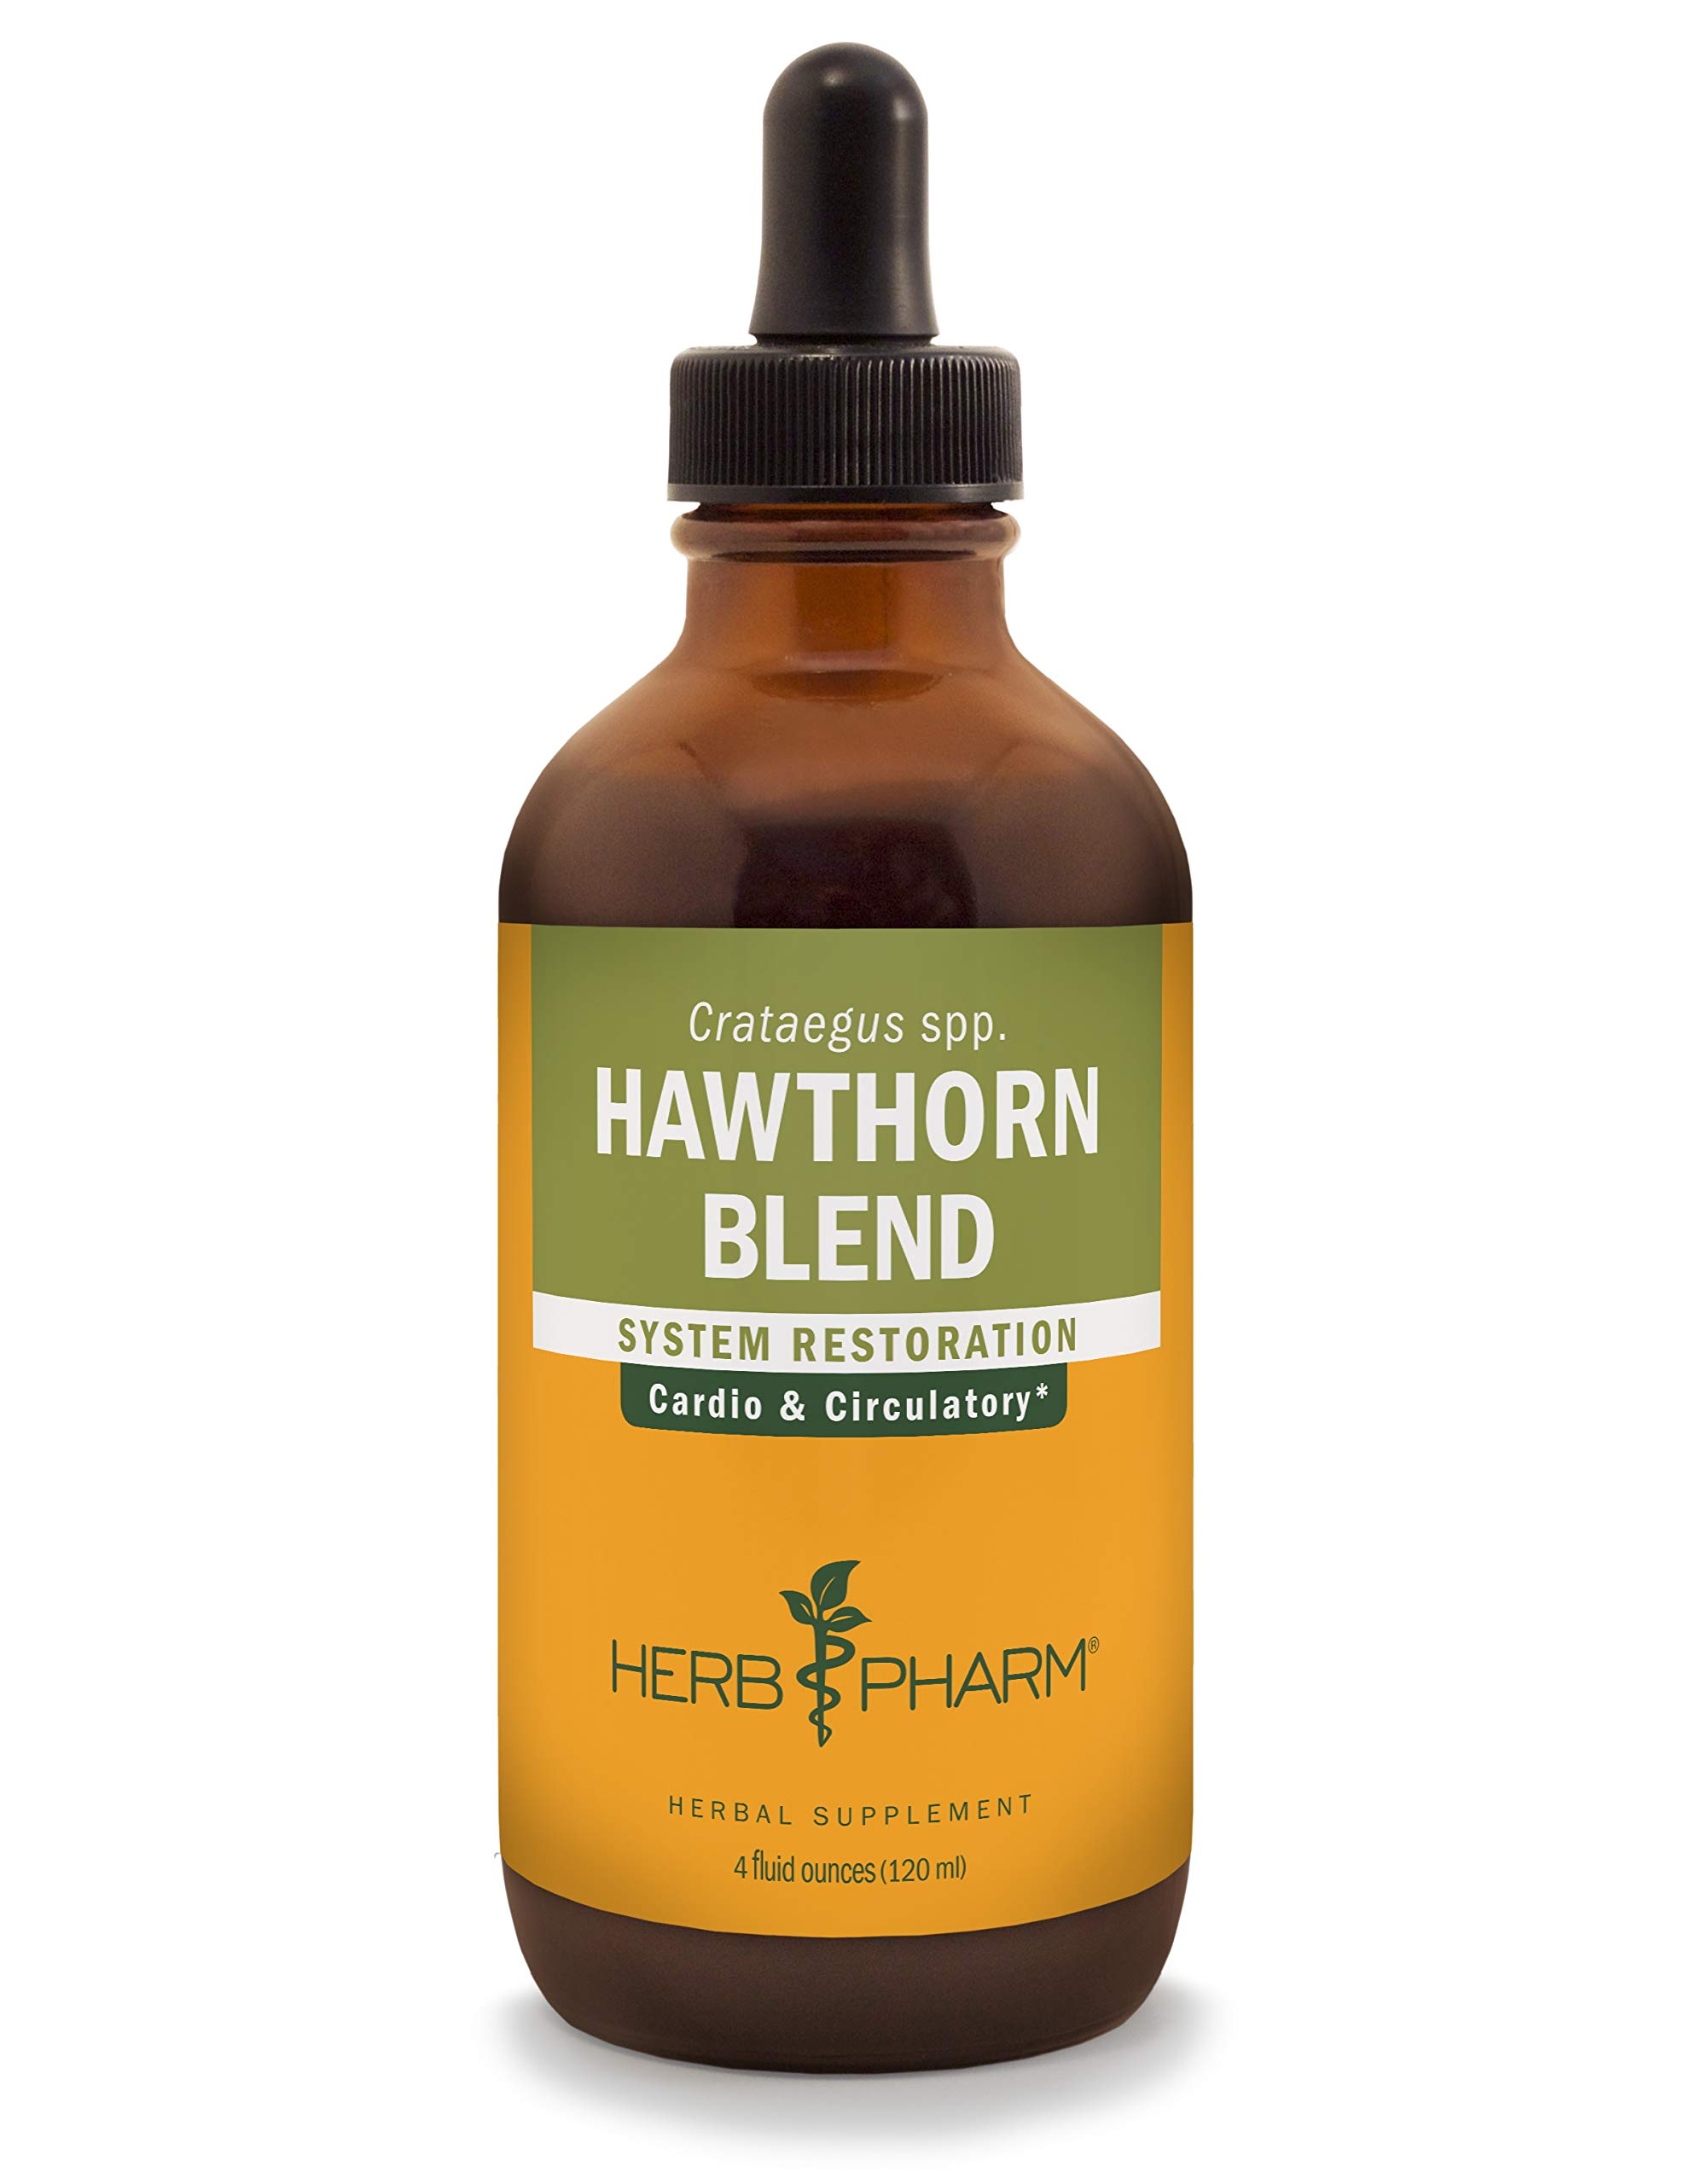 Herb Pharm Hawthorn Blend Liquid Extract for Cardiovascular and Circulatory Support - 4 Ounce